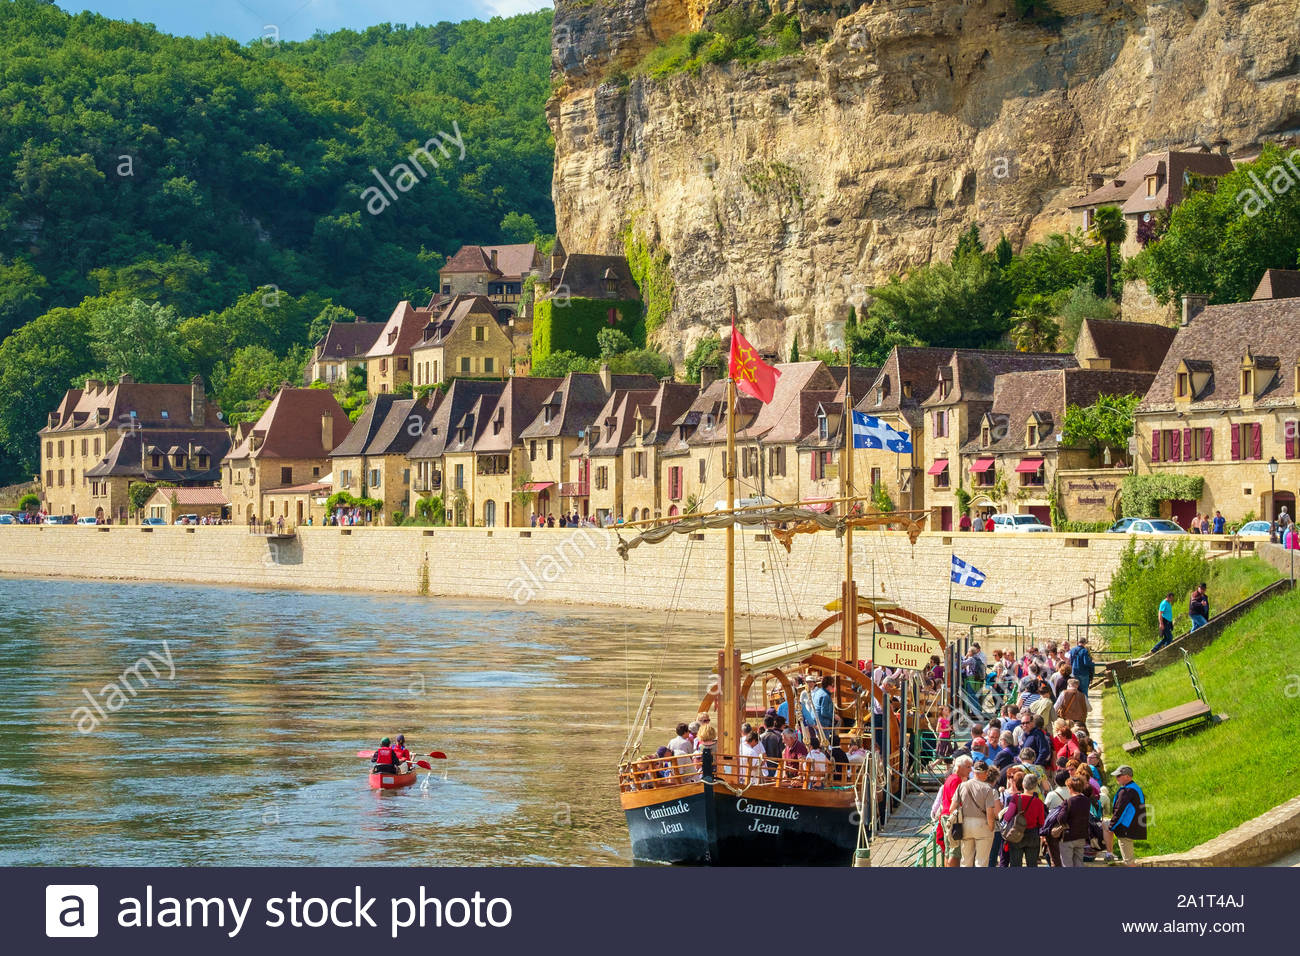 Tourist boarding a boat on Dordogne River, La Roque-Gageac, Dordogne Department, Aquitaine, France Stock Photo